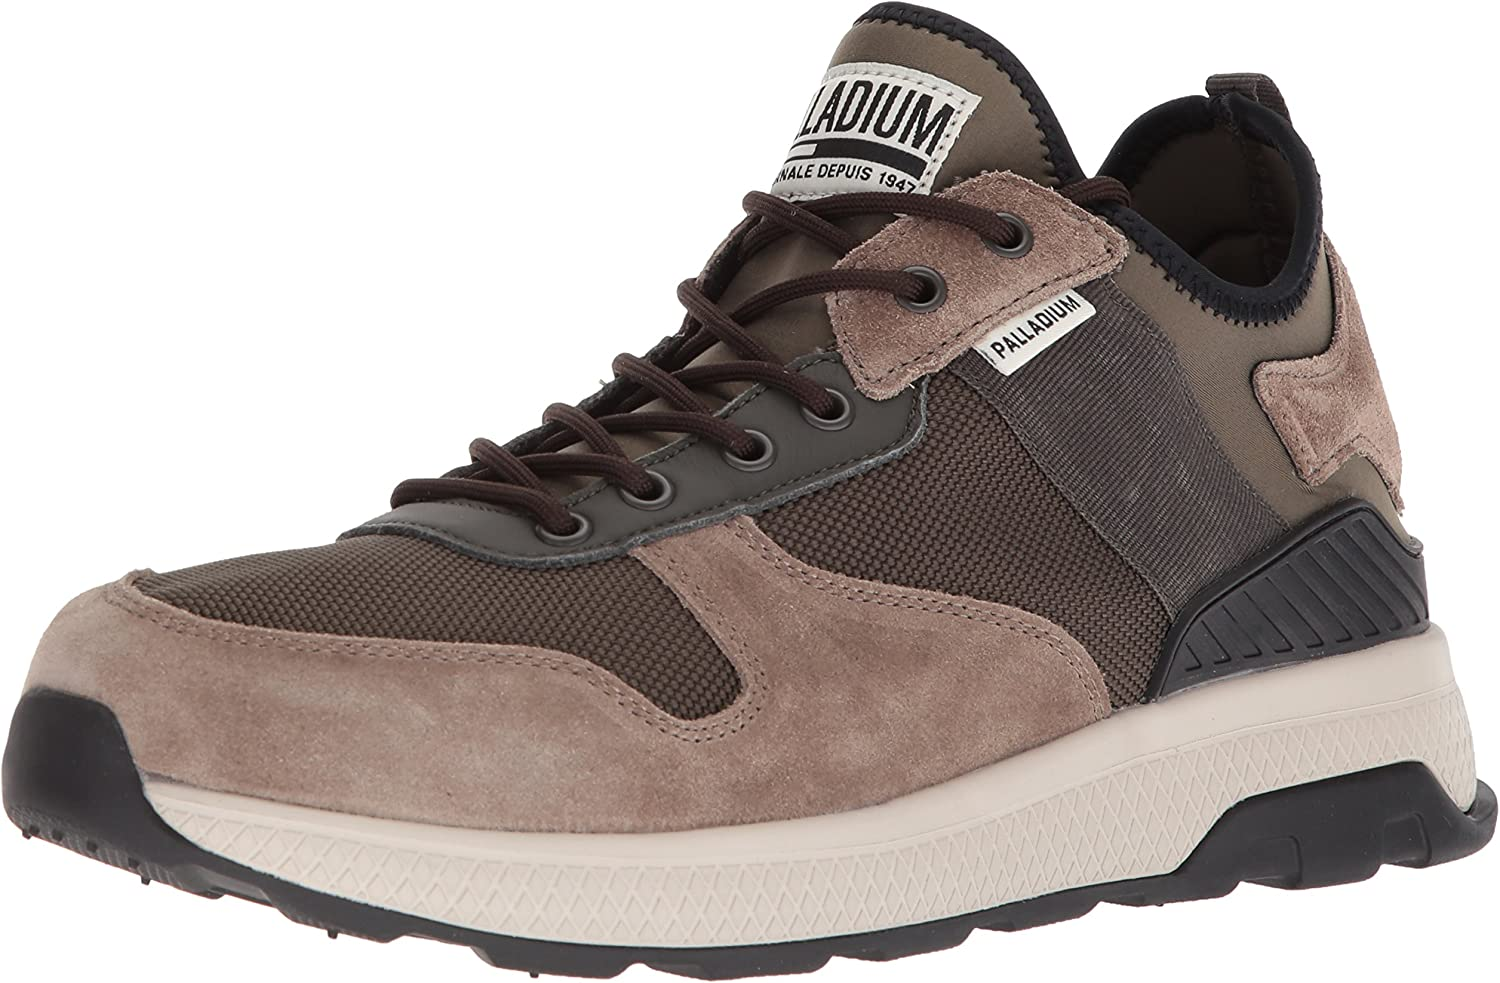 Palladium Men's Ax Eon Army Runner Sneaker